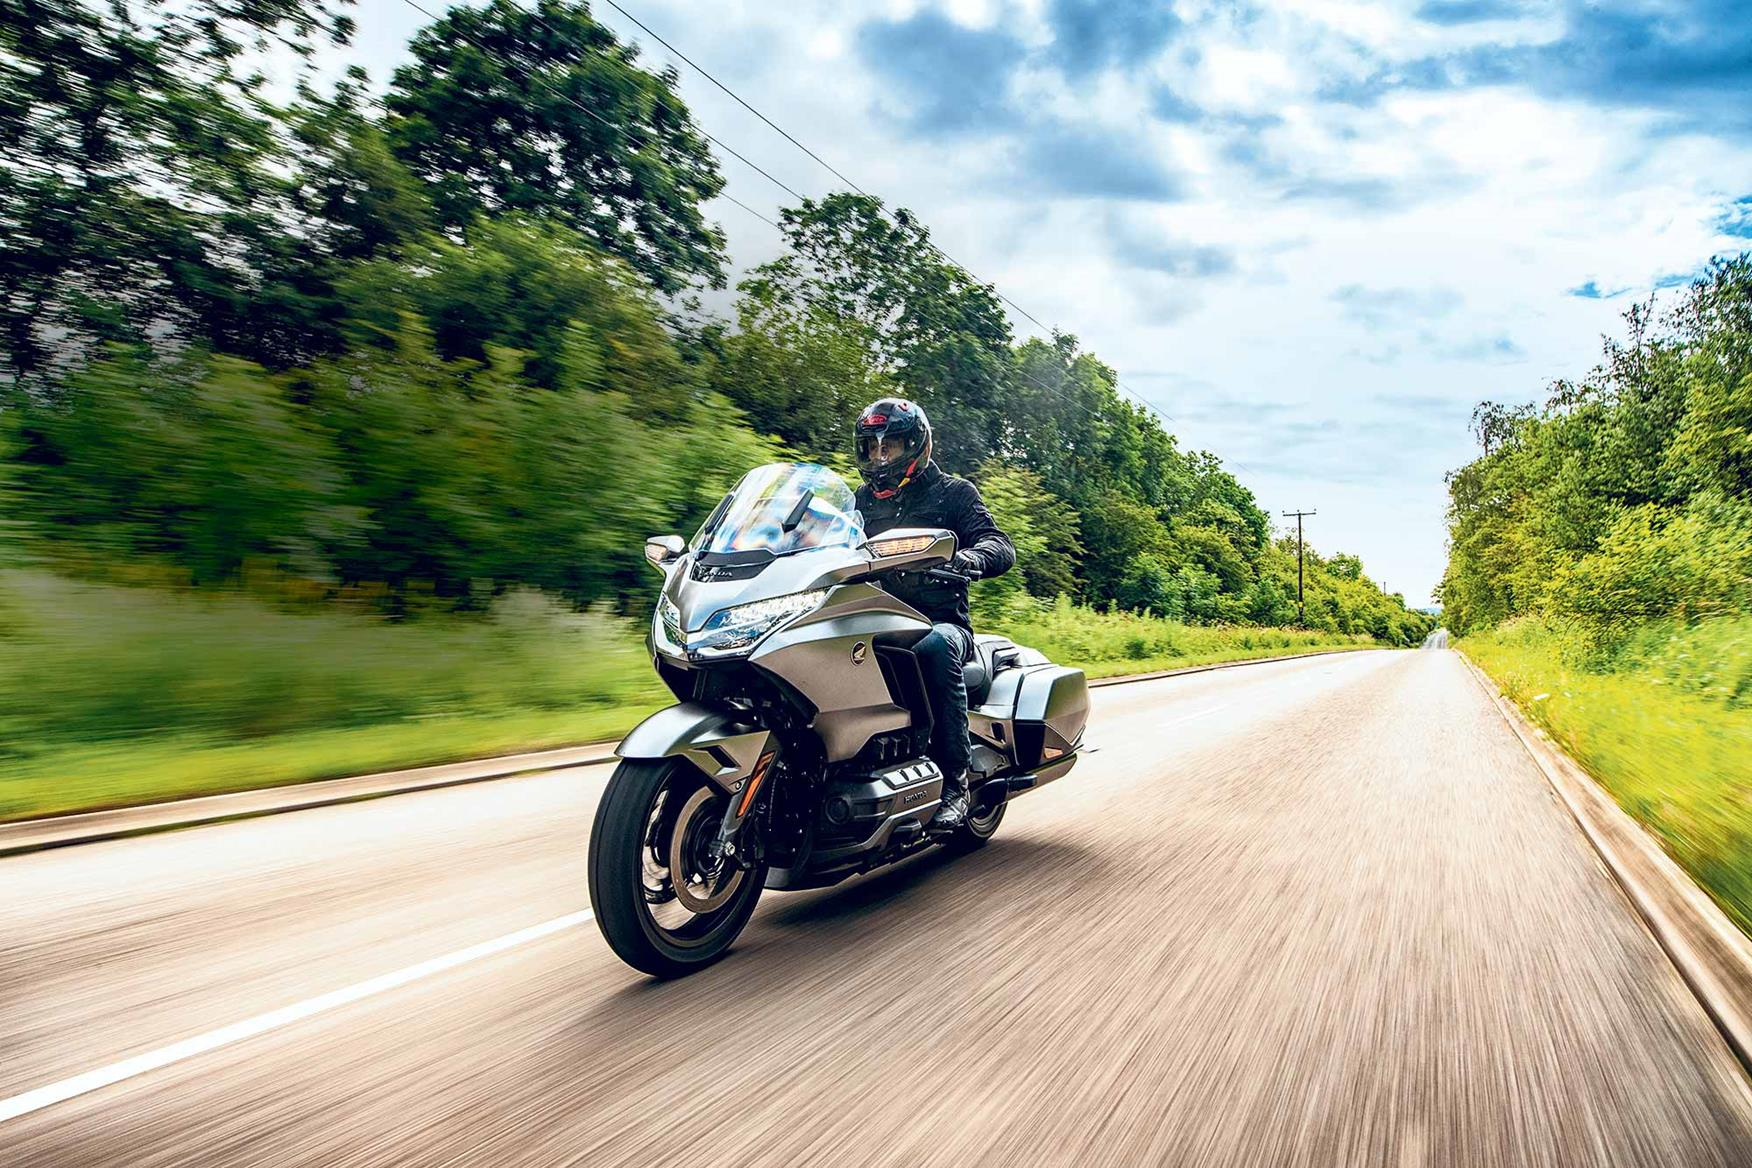 Riding the standard Honda Gold Wing